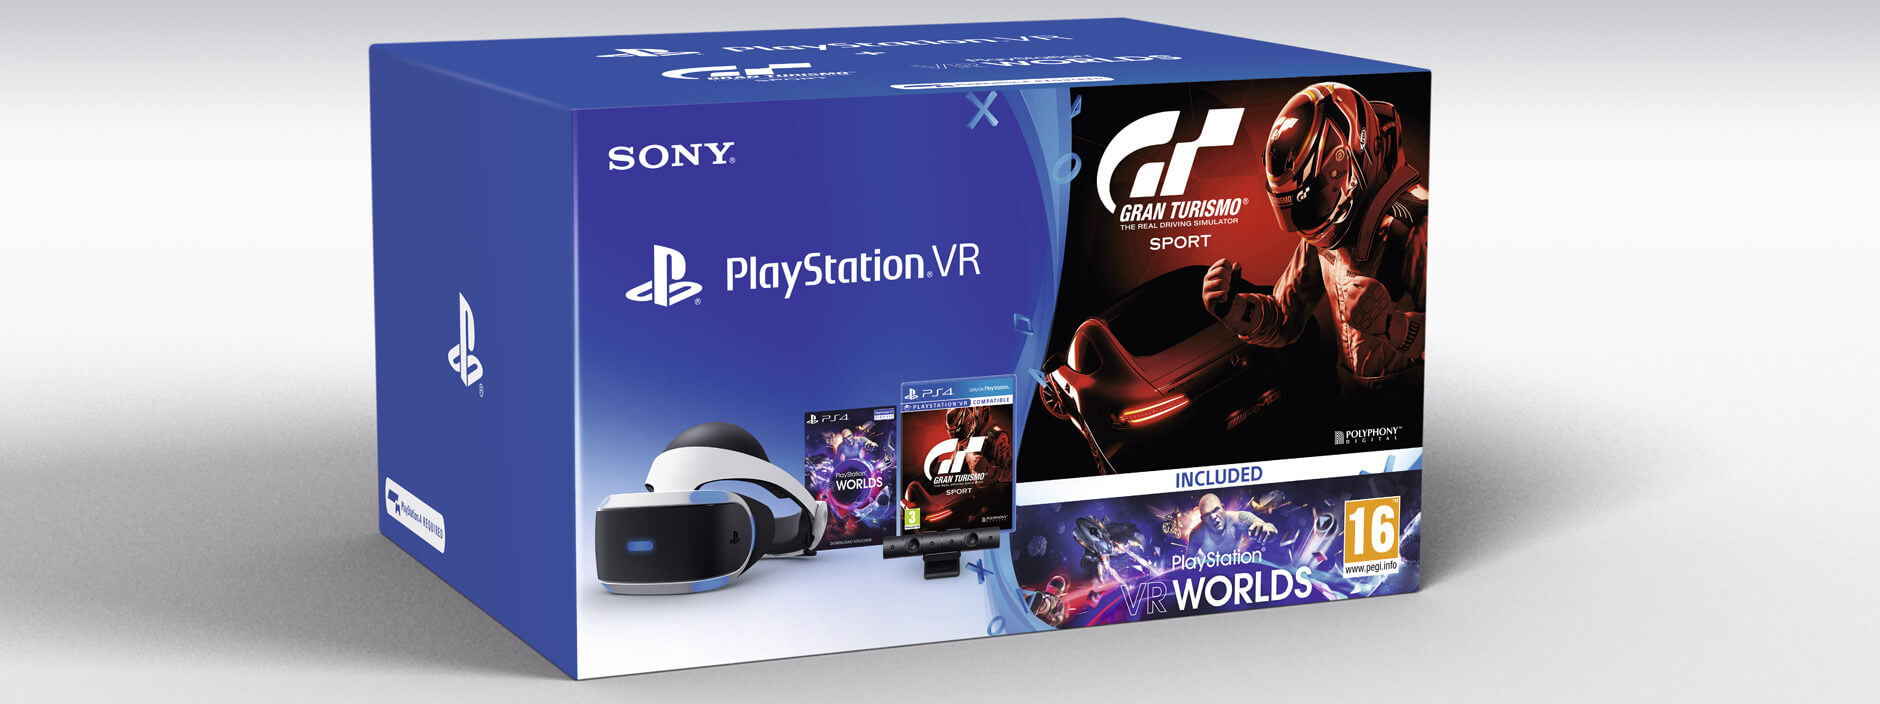 Sony PS VR (CUH-ZVR1EY) Система виртуальной реальности для PlayStation 4 + игра VRW VCH + игра GTS + PS4 Камера v2 [PS719951162] playstation 3 power supply orignal sony part high quality aps 226